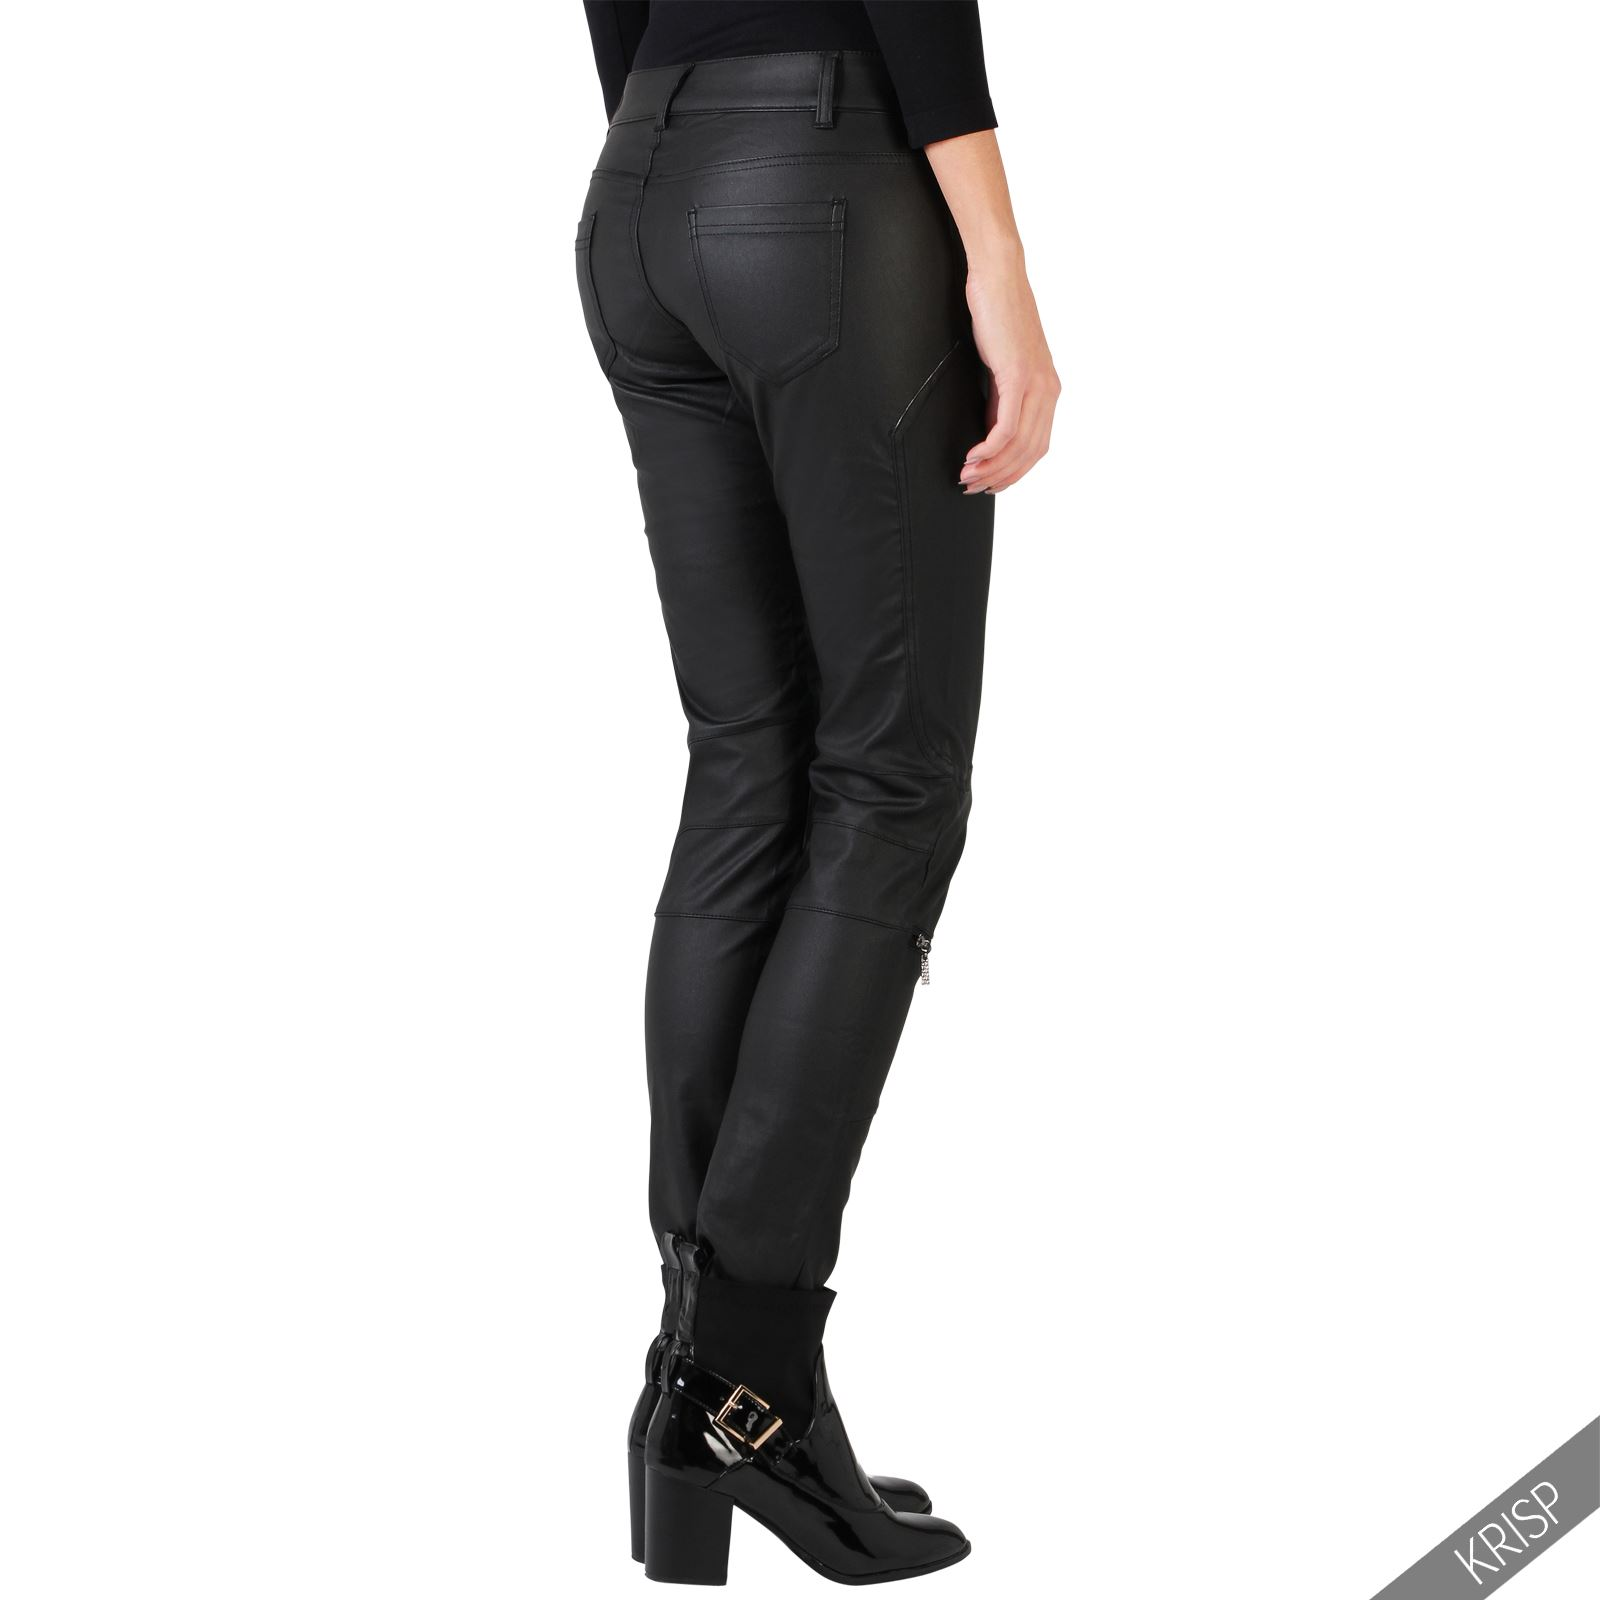 Simple Brand Pants Skinny Leather Pants In Black This Item Is Currently